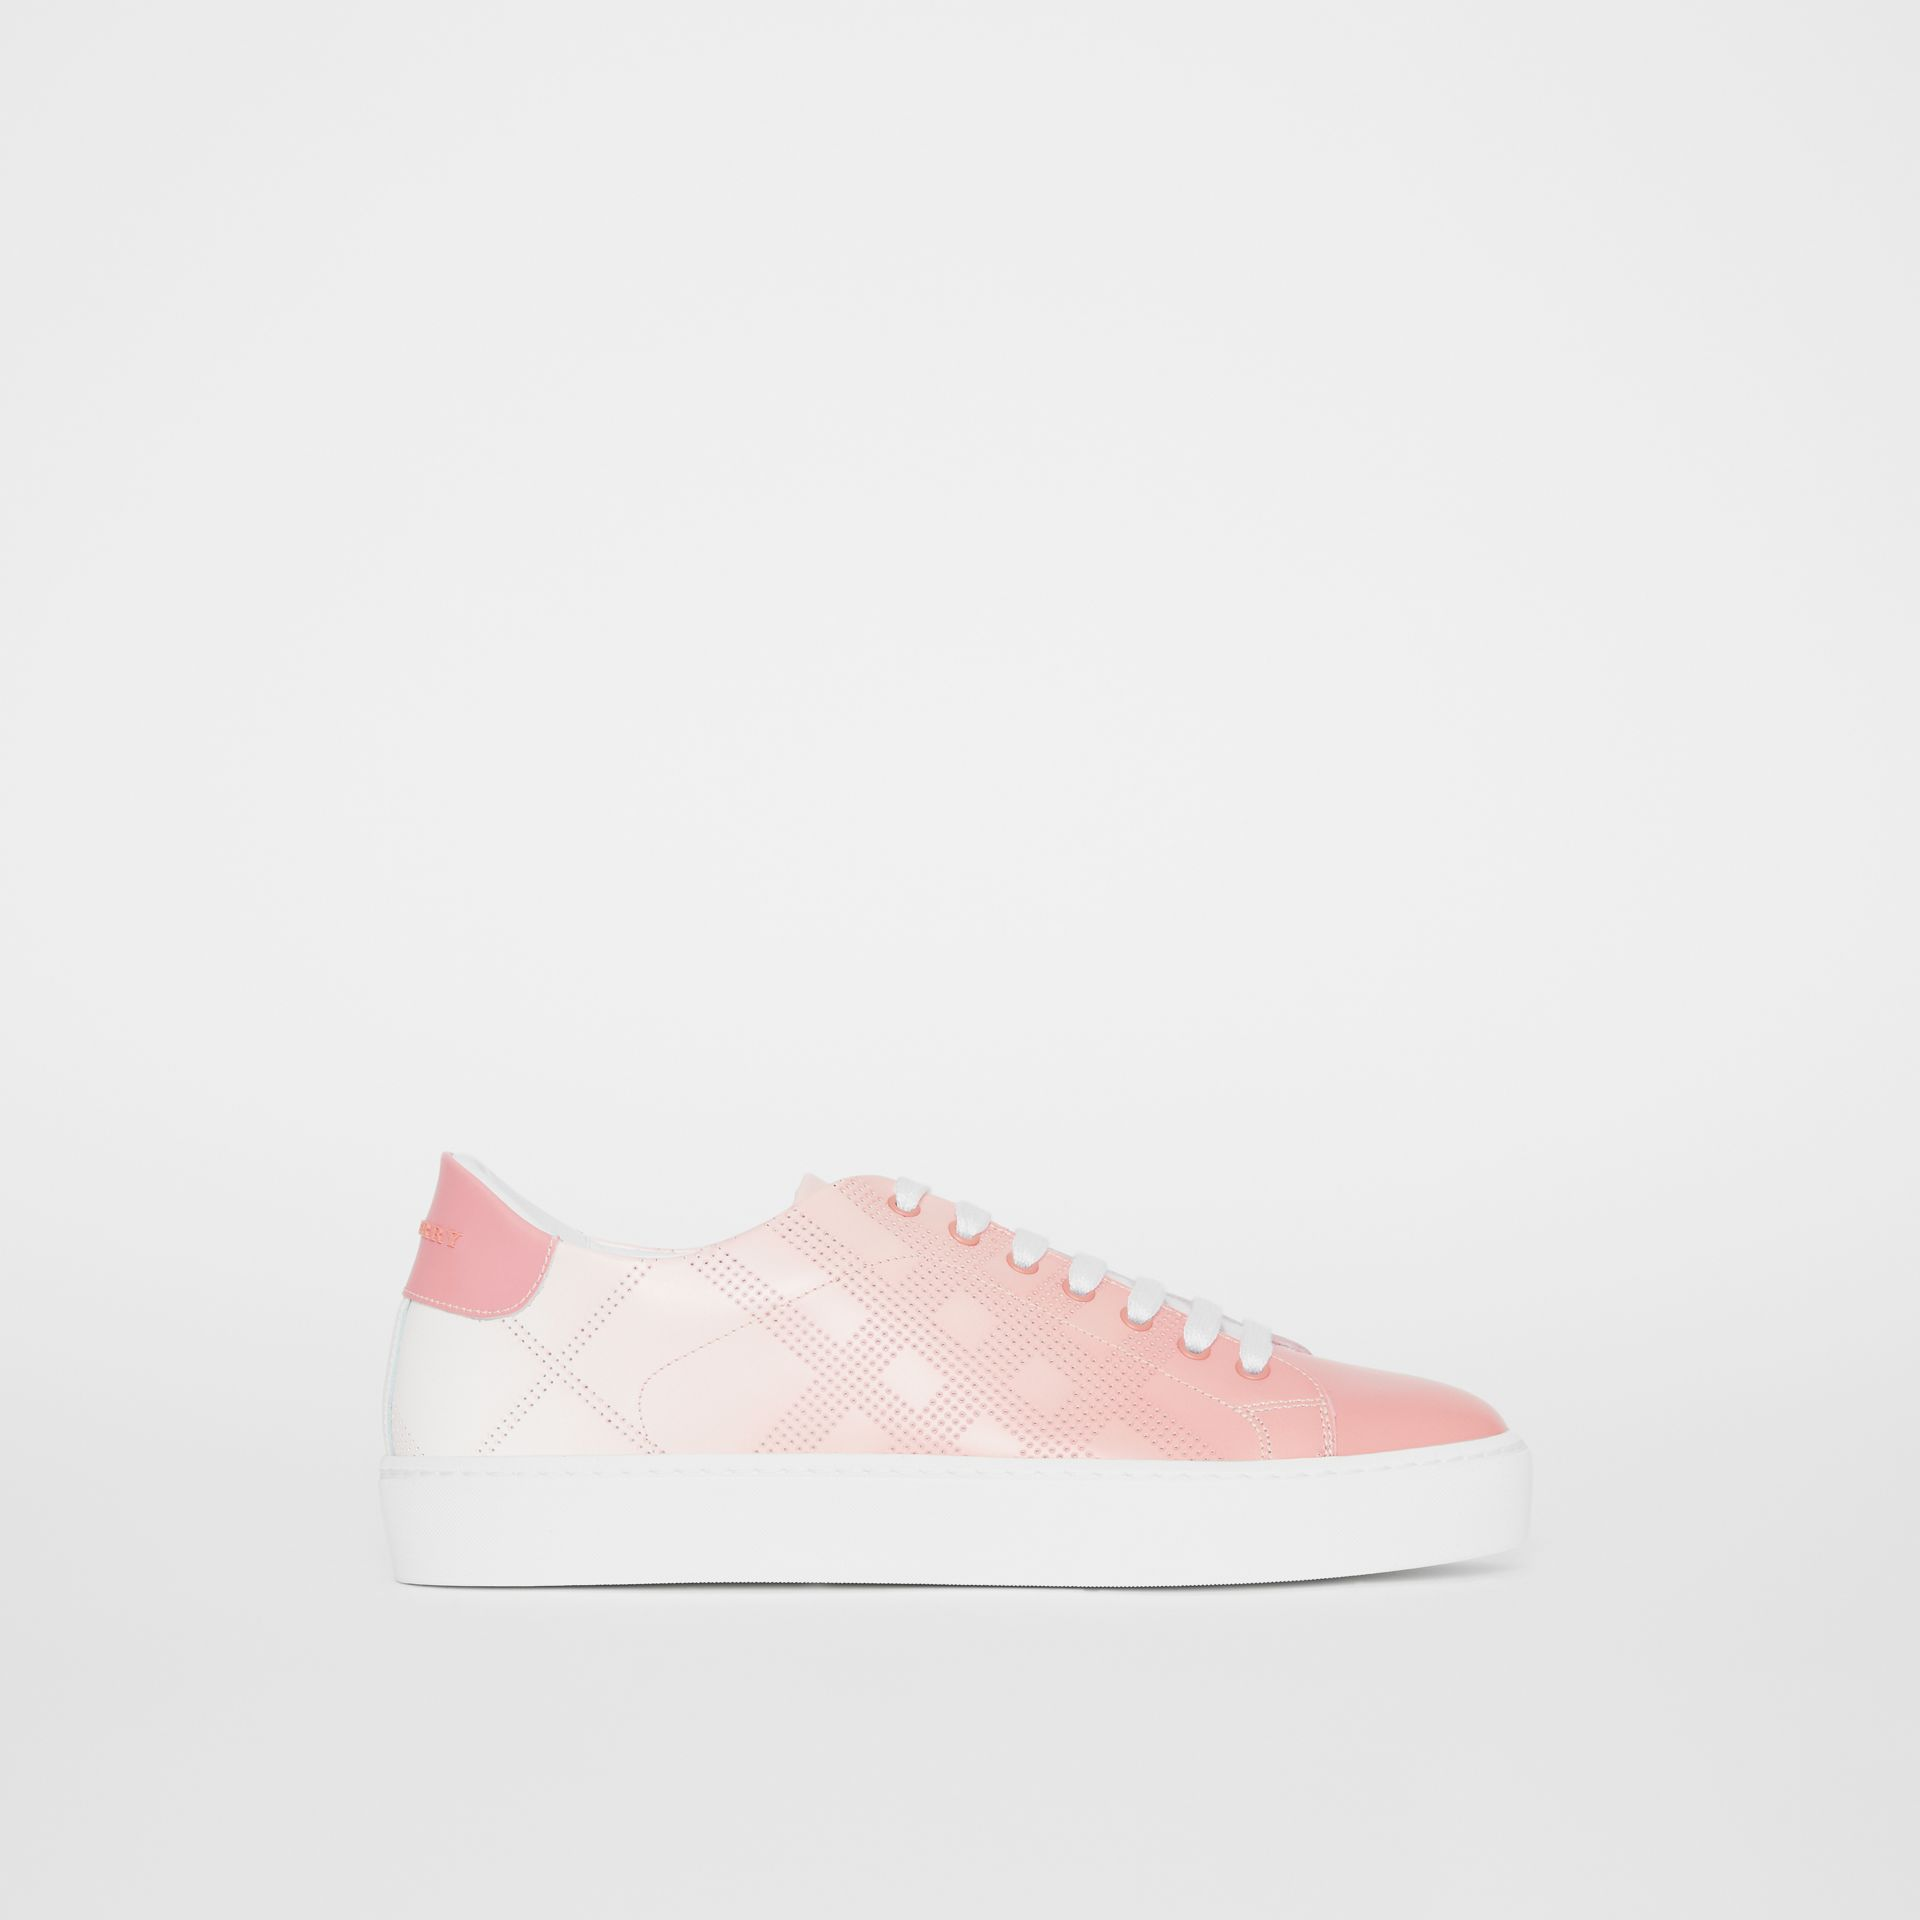 Perforated Check Dégradé Leather Sneakers in Sugar Pink - Women | Burberry United States - gallery image 5